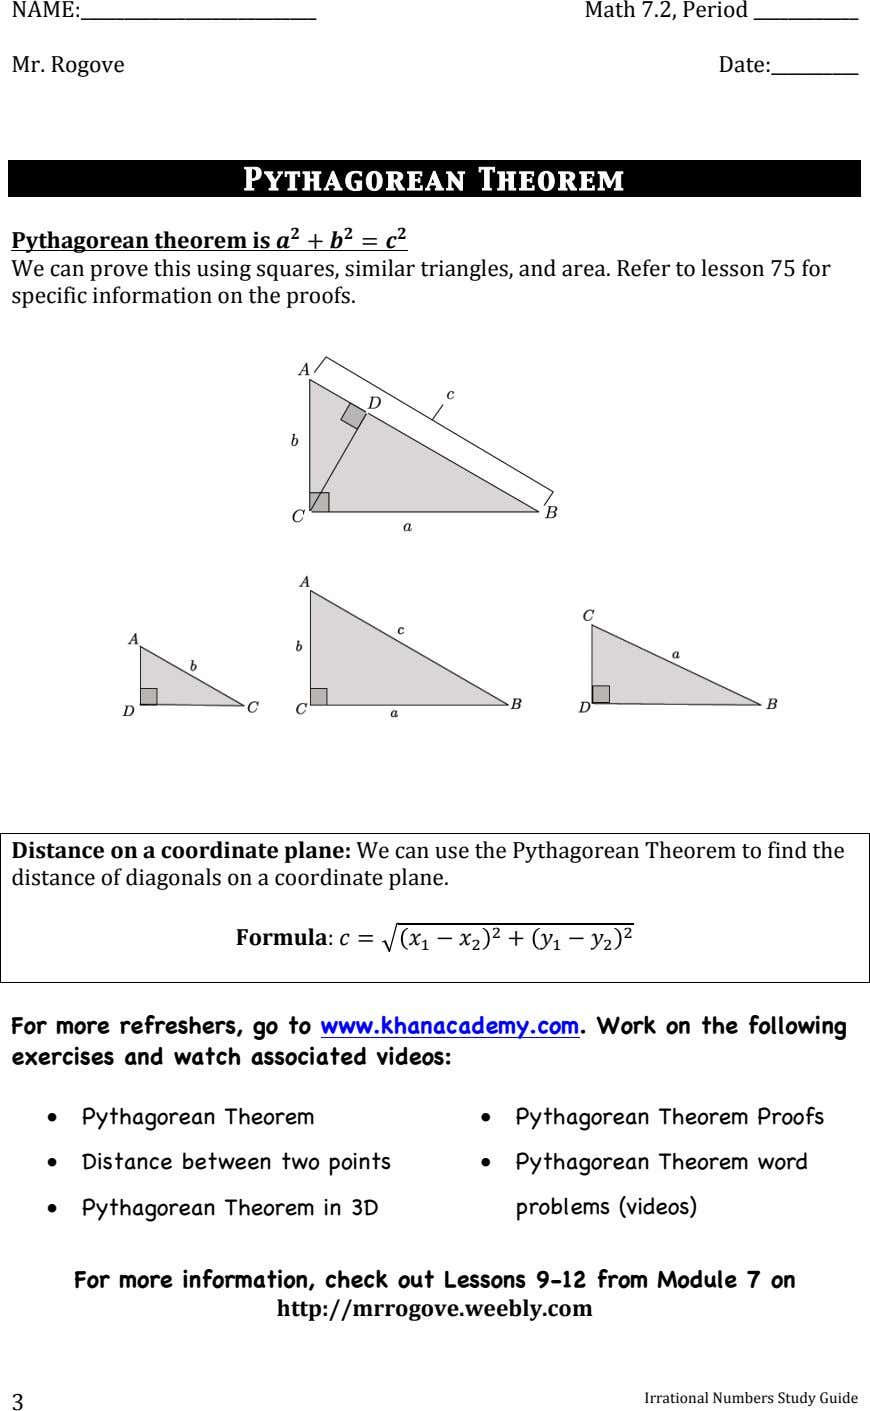 NAME: ' Math'7.2,'Period' ' Mr.'Rogove ' Date: ' ' Pythagorean Theorem (